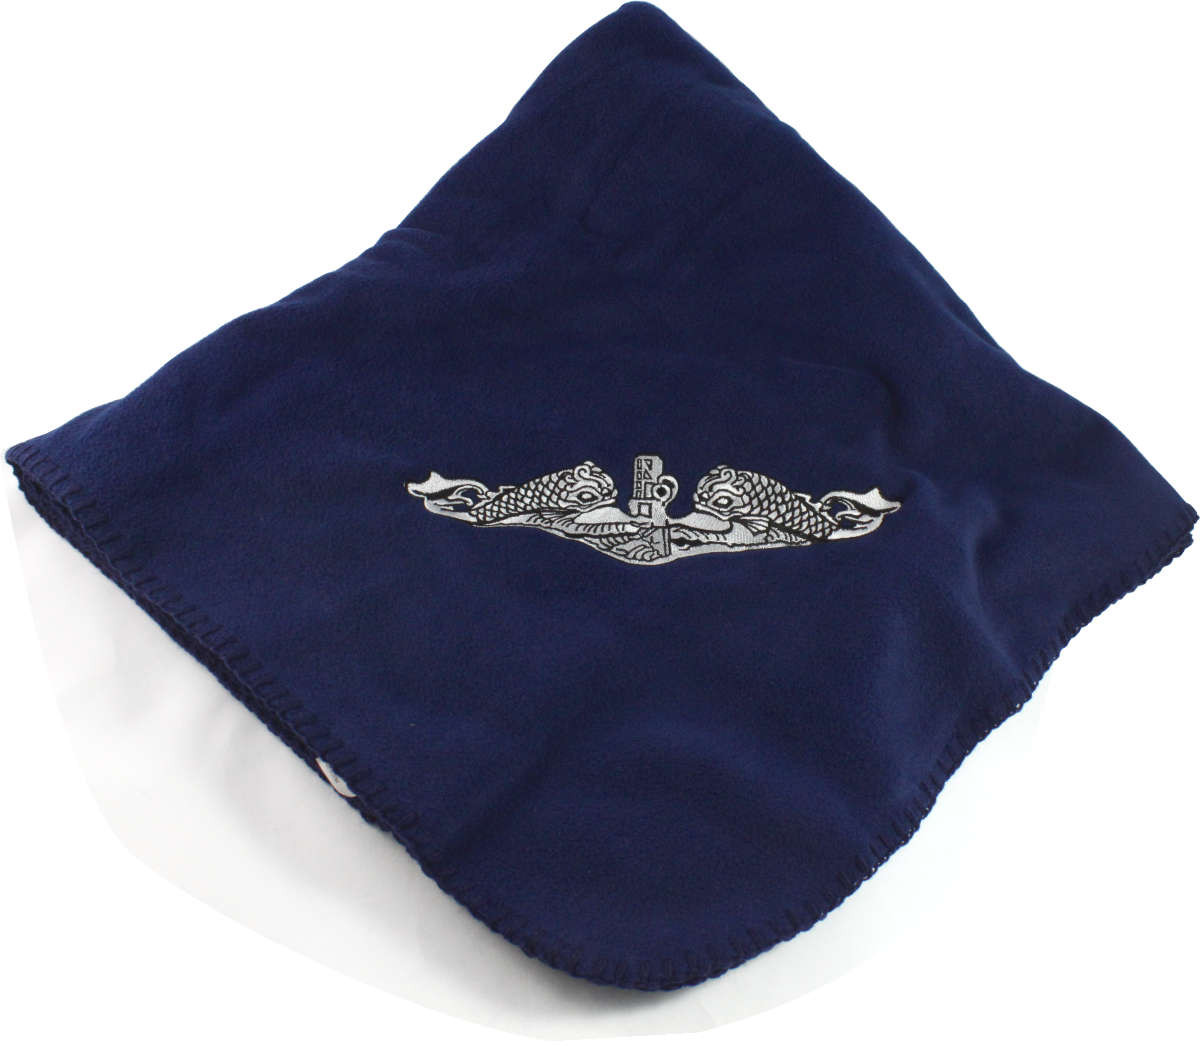 United States Navy Submarine Service Enlisted Dolphins Embroidered onto  Navy Blue Fleece Blanket. Loading zoom 152ac2fe5